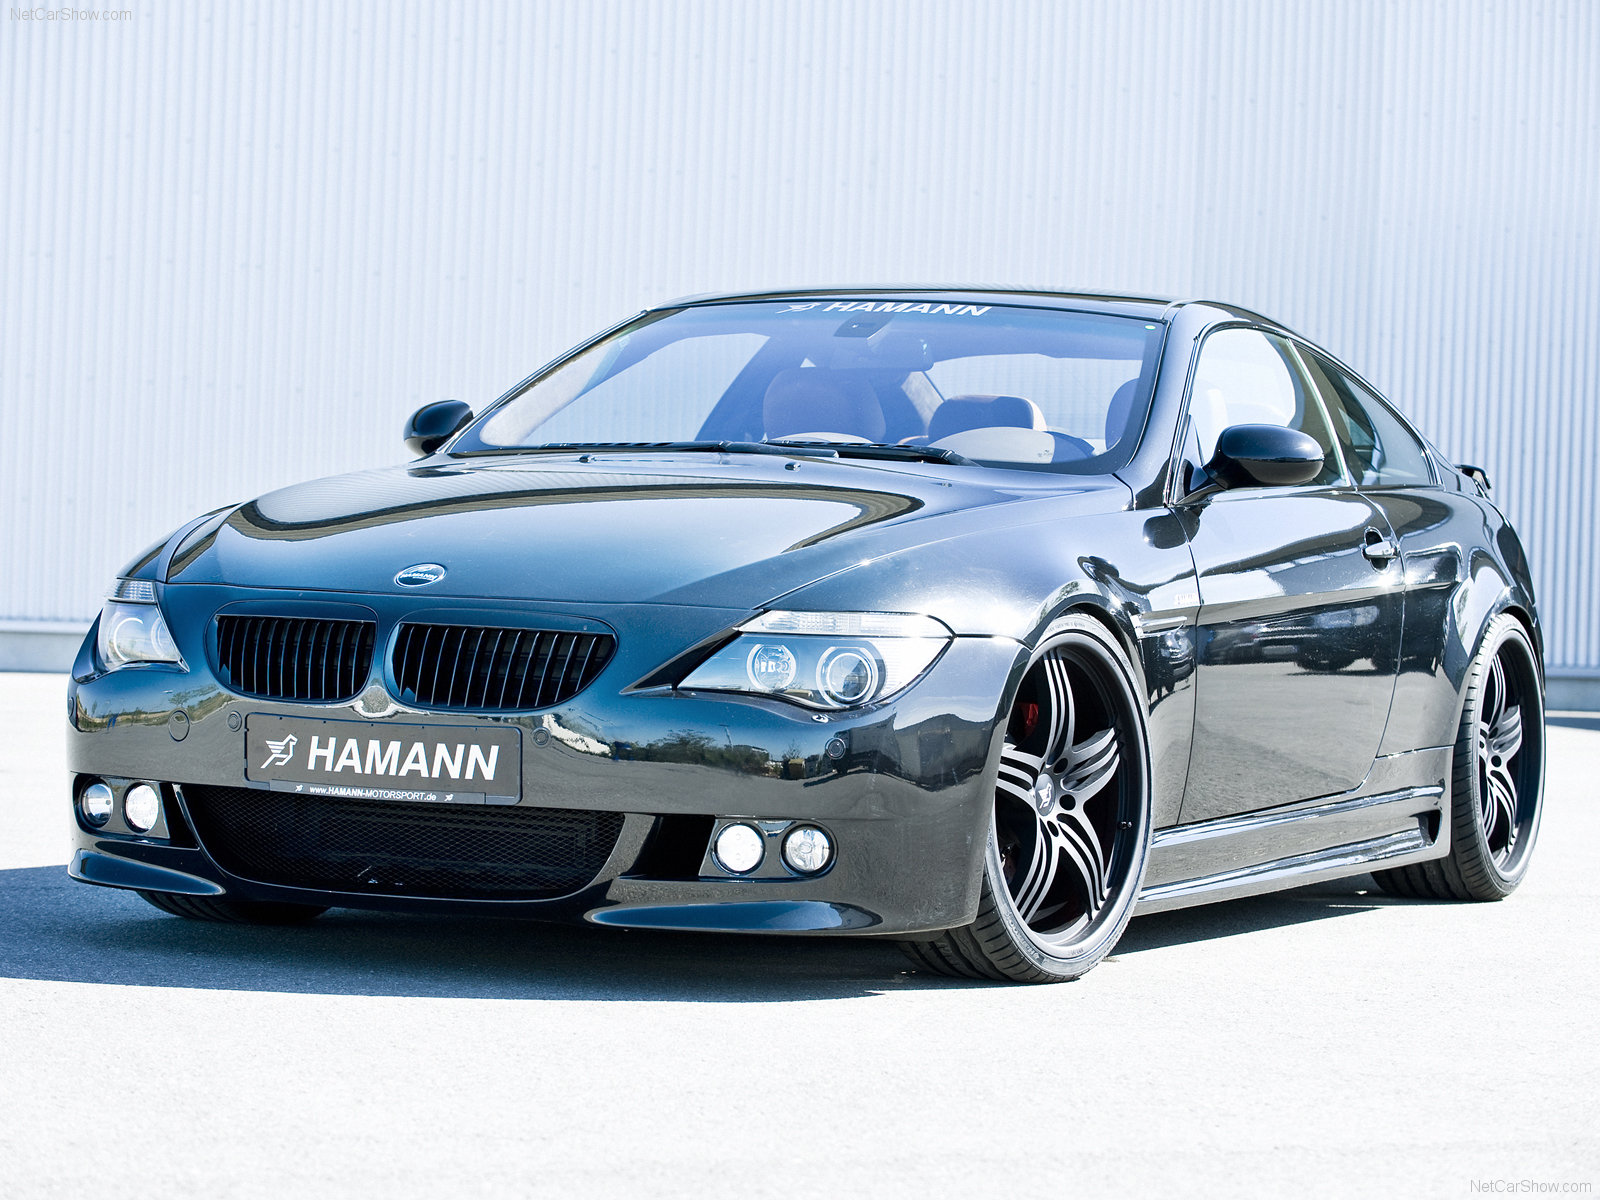 hamann bmw 6 series picture 56697 hamann photo gallery. Black Bedroom Furniture Sets. Home Design Ideas